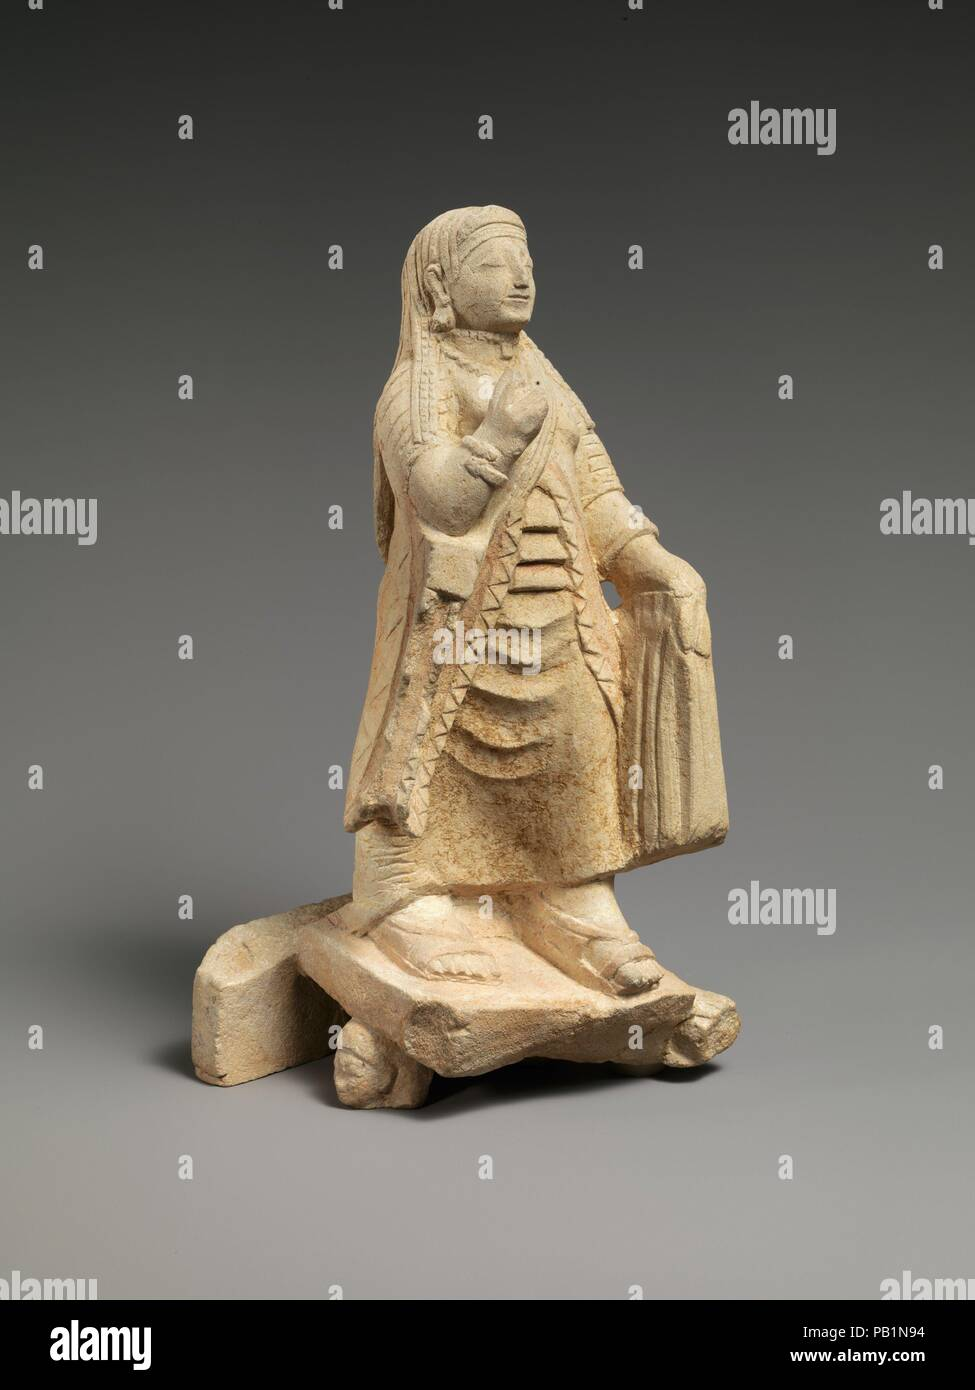 Limestone figure of a woman. Culture: Cypriot. Dimensions: Overall: 9 13/16 x 5 x 4 1/4 in. (25 cm)  Other (without base): 8in. (20.3cm). Date: late 6th century B.C..  The figure is elaborately dressed in a chiton (long undergarment), a himation (overgarment), sandals, a diadem, necklaces, earrings, and spiral bracelets with snake terminals. With her left hand she holds both her drapery and the handle of a mirror. She stands on a ledge that abutted on something else in back and that is supported by figures, of which two heads remain. This work figured prominently during the 1880s, which contro - Stock Image